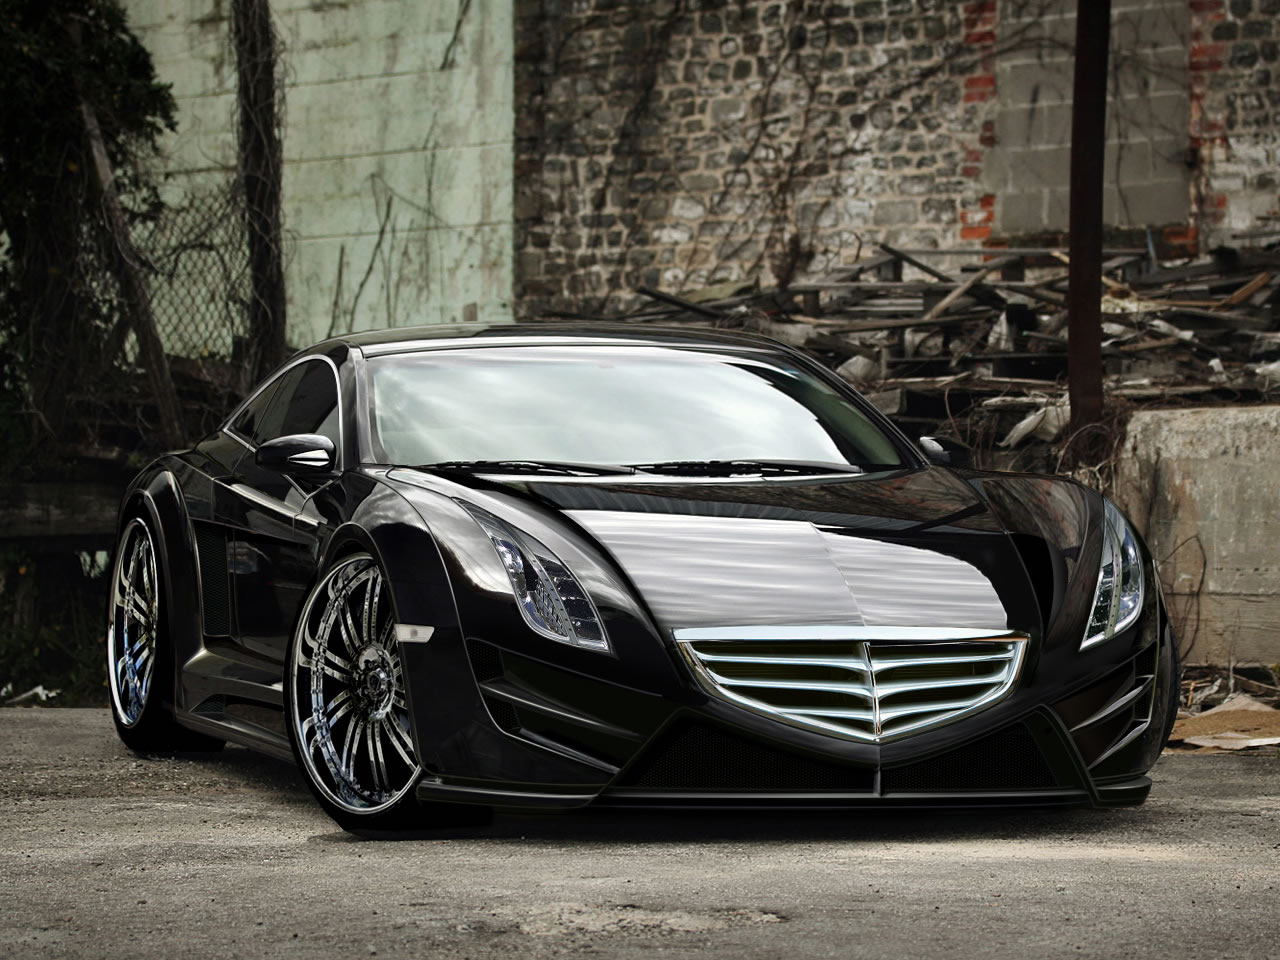 Black Cars Wallpaper 7 Background: Cool Black Car Wallpapers 9 Hd Wallpaper